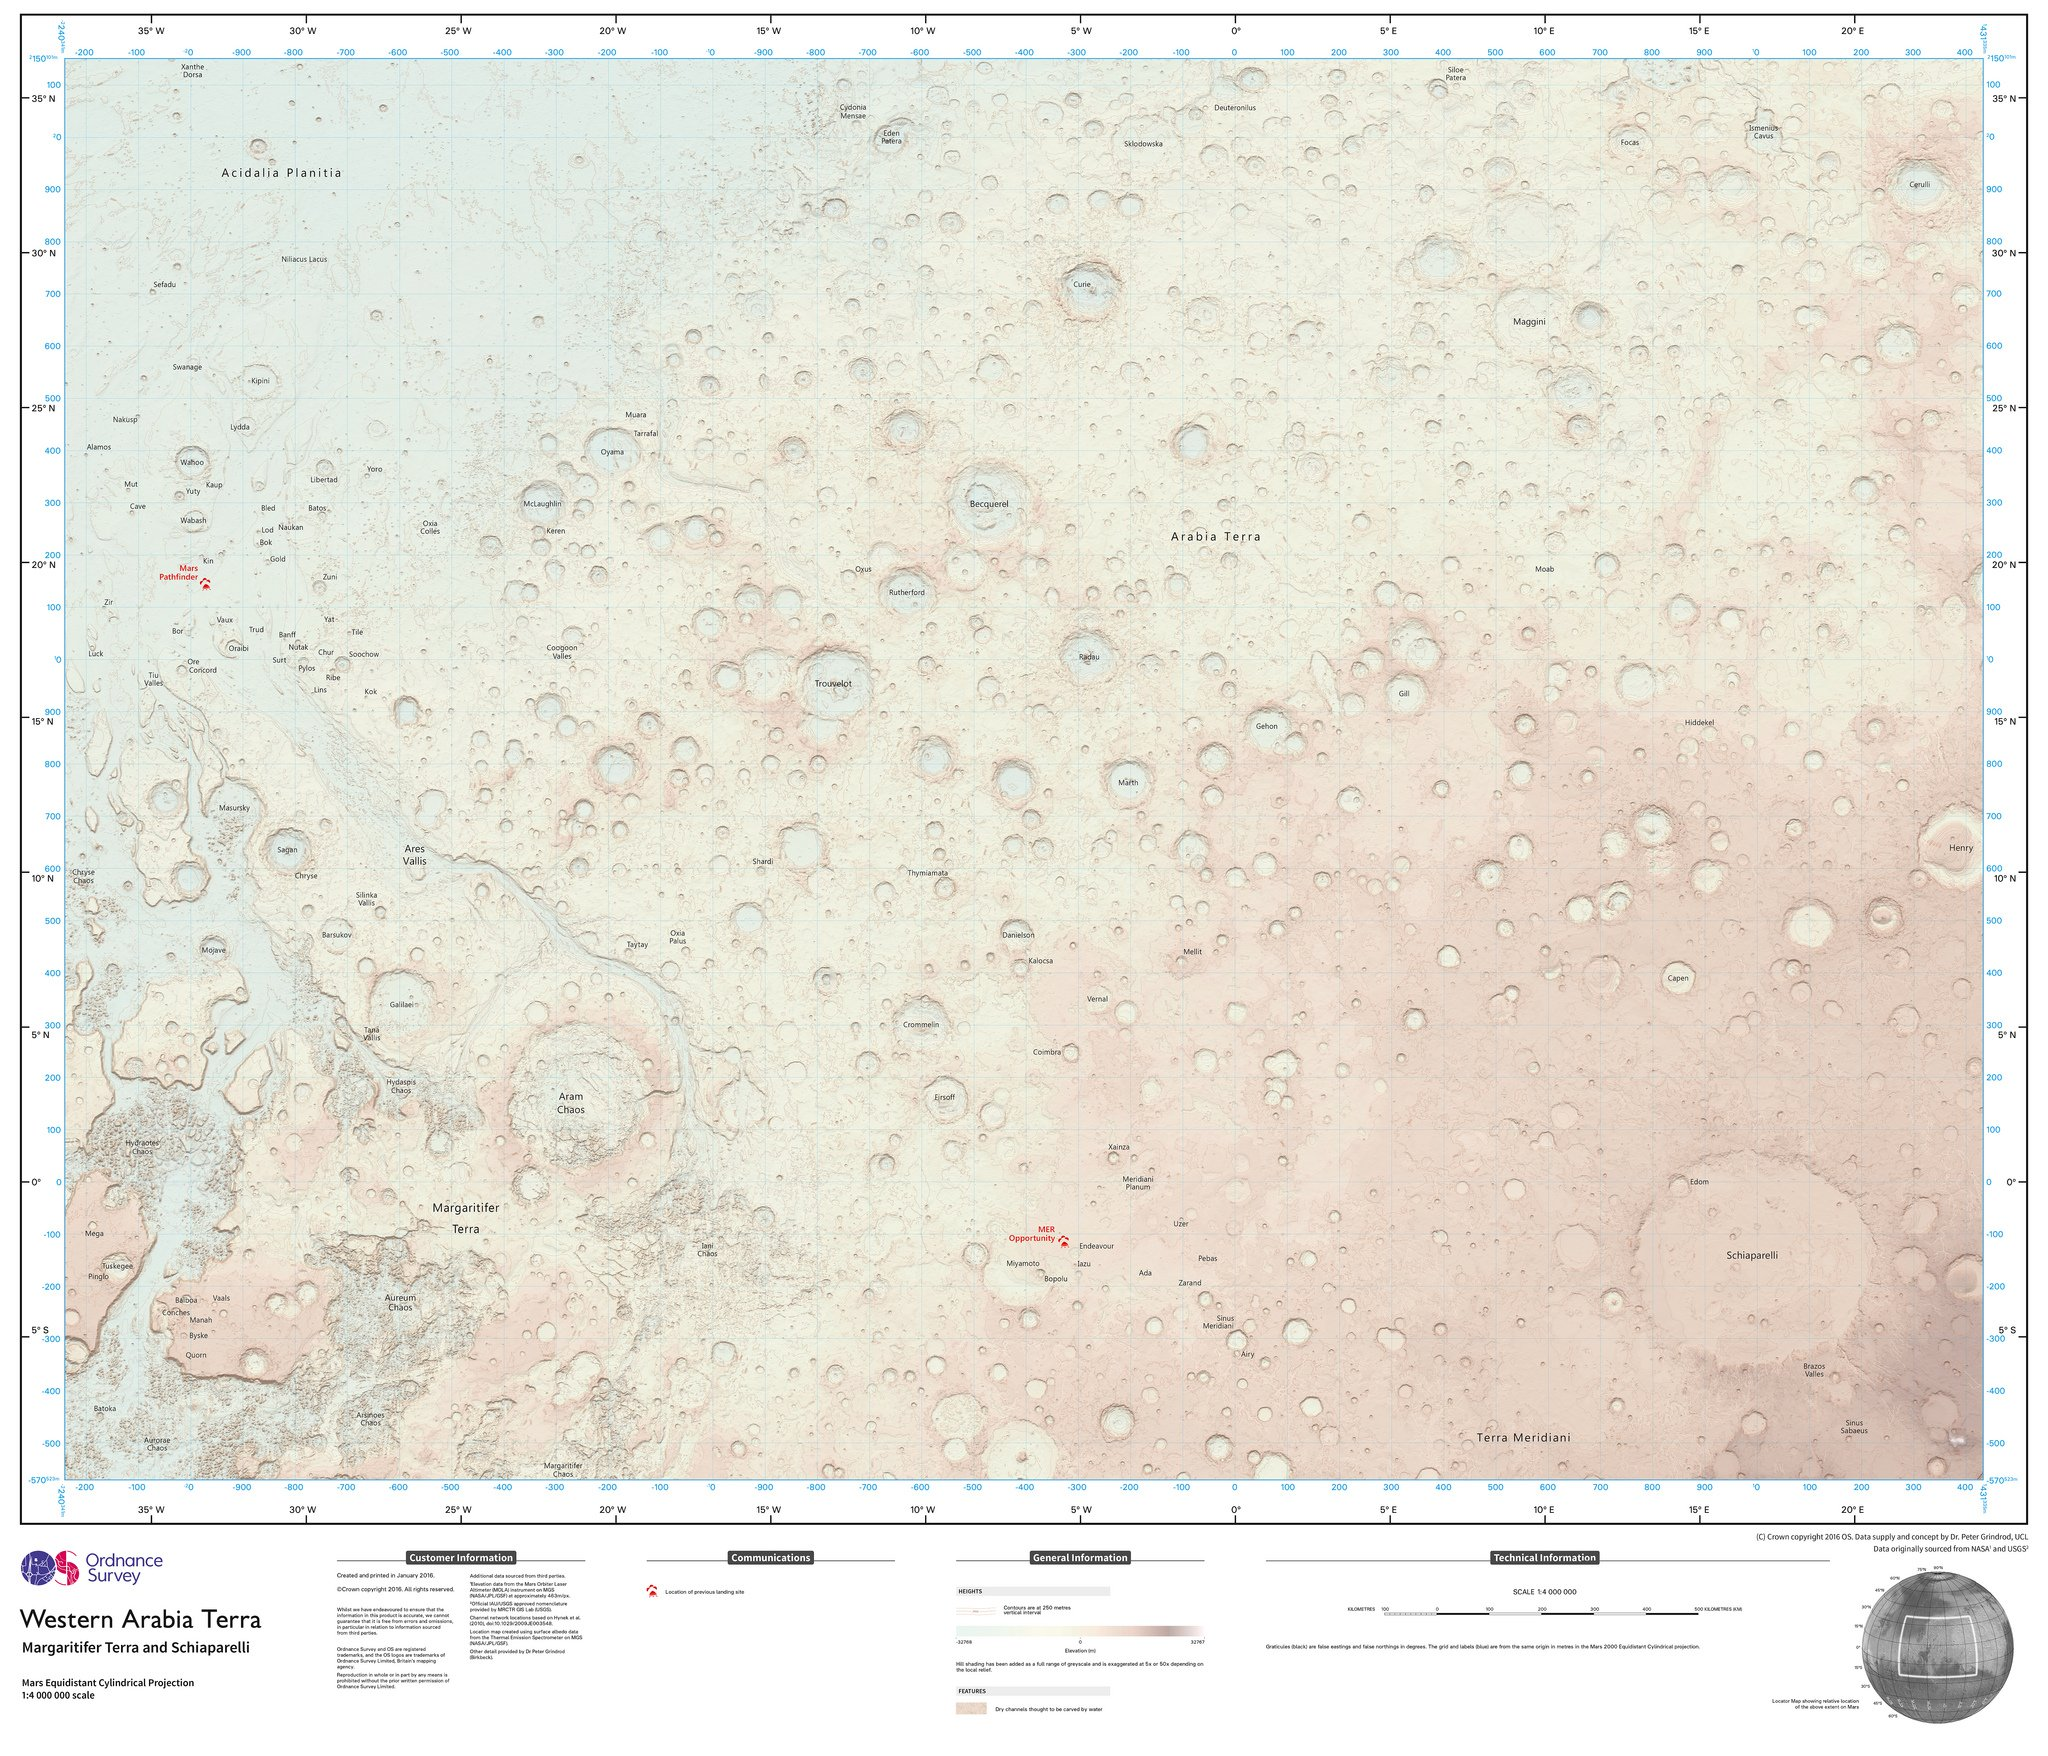 Ordnance Survey makes a map of Mars and it's pretty cool Taken from: https://www.flickr.com/photos/osmapping/with/25012985956/